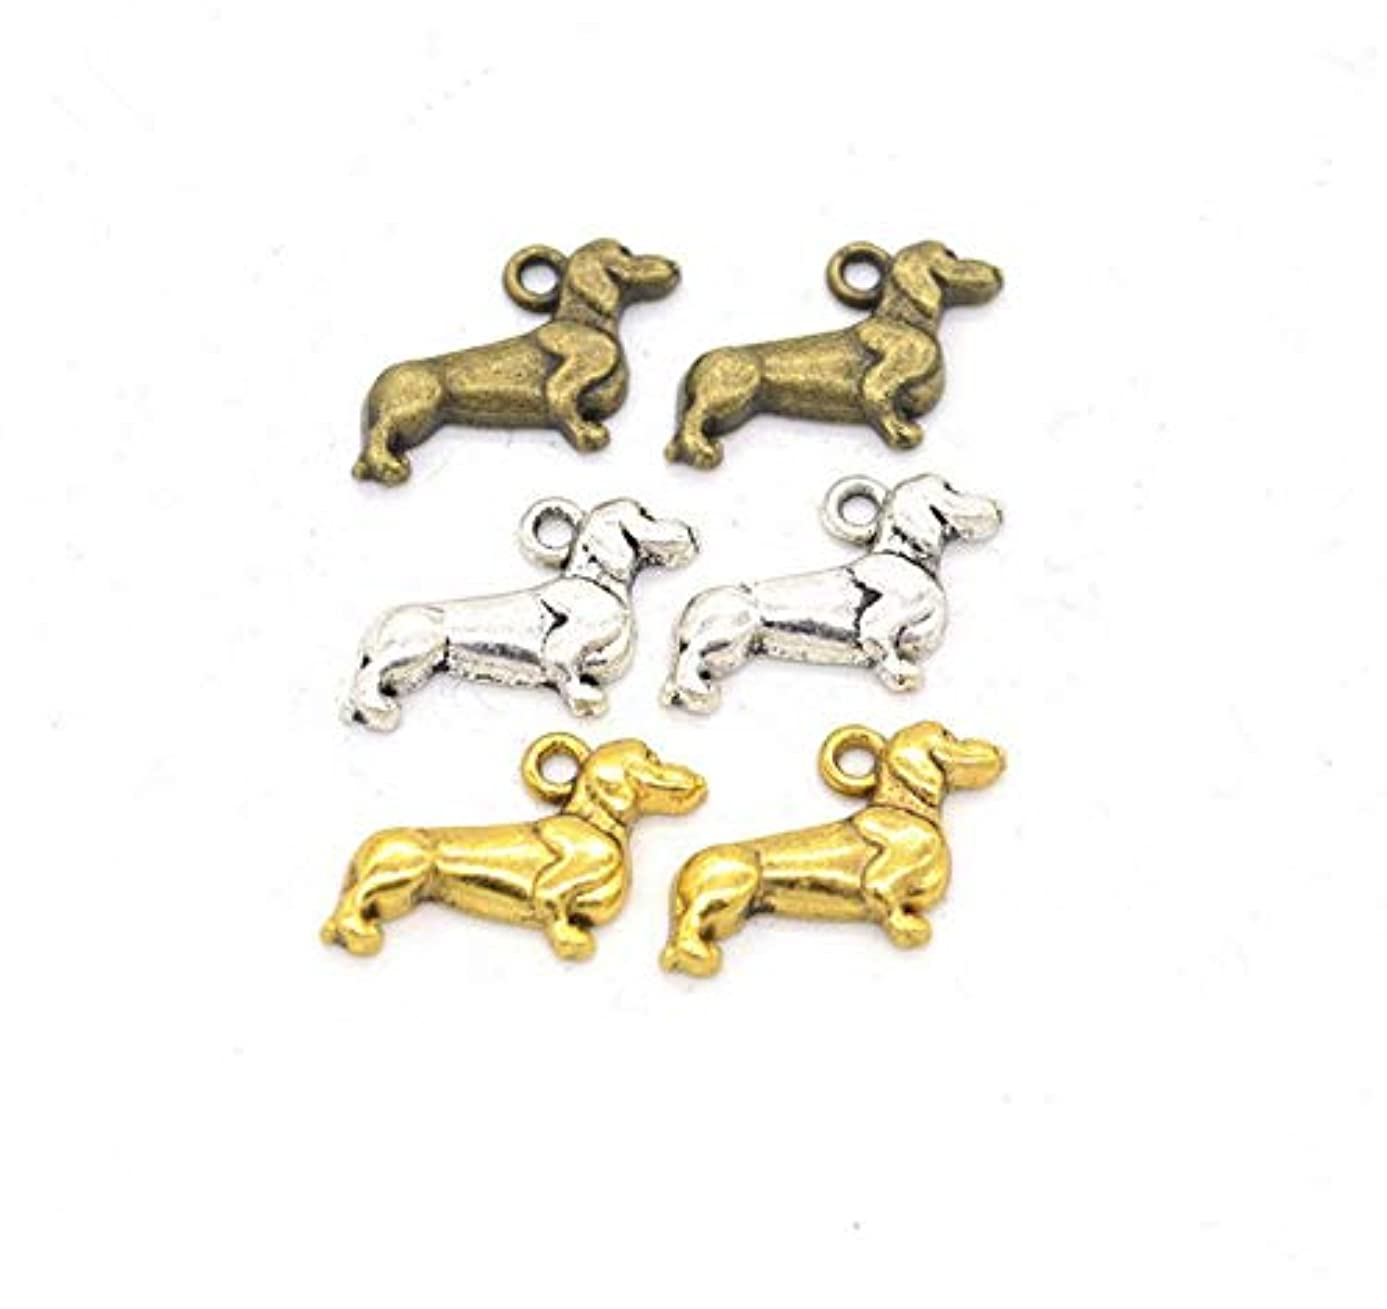 70pcs Mixed Dachshund Charms for Jewelry Making DIY Charms Handmade Necklace Girls Kids Accessory